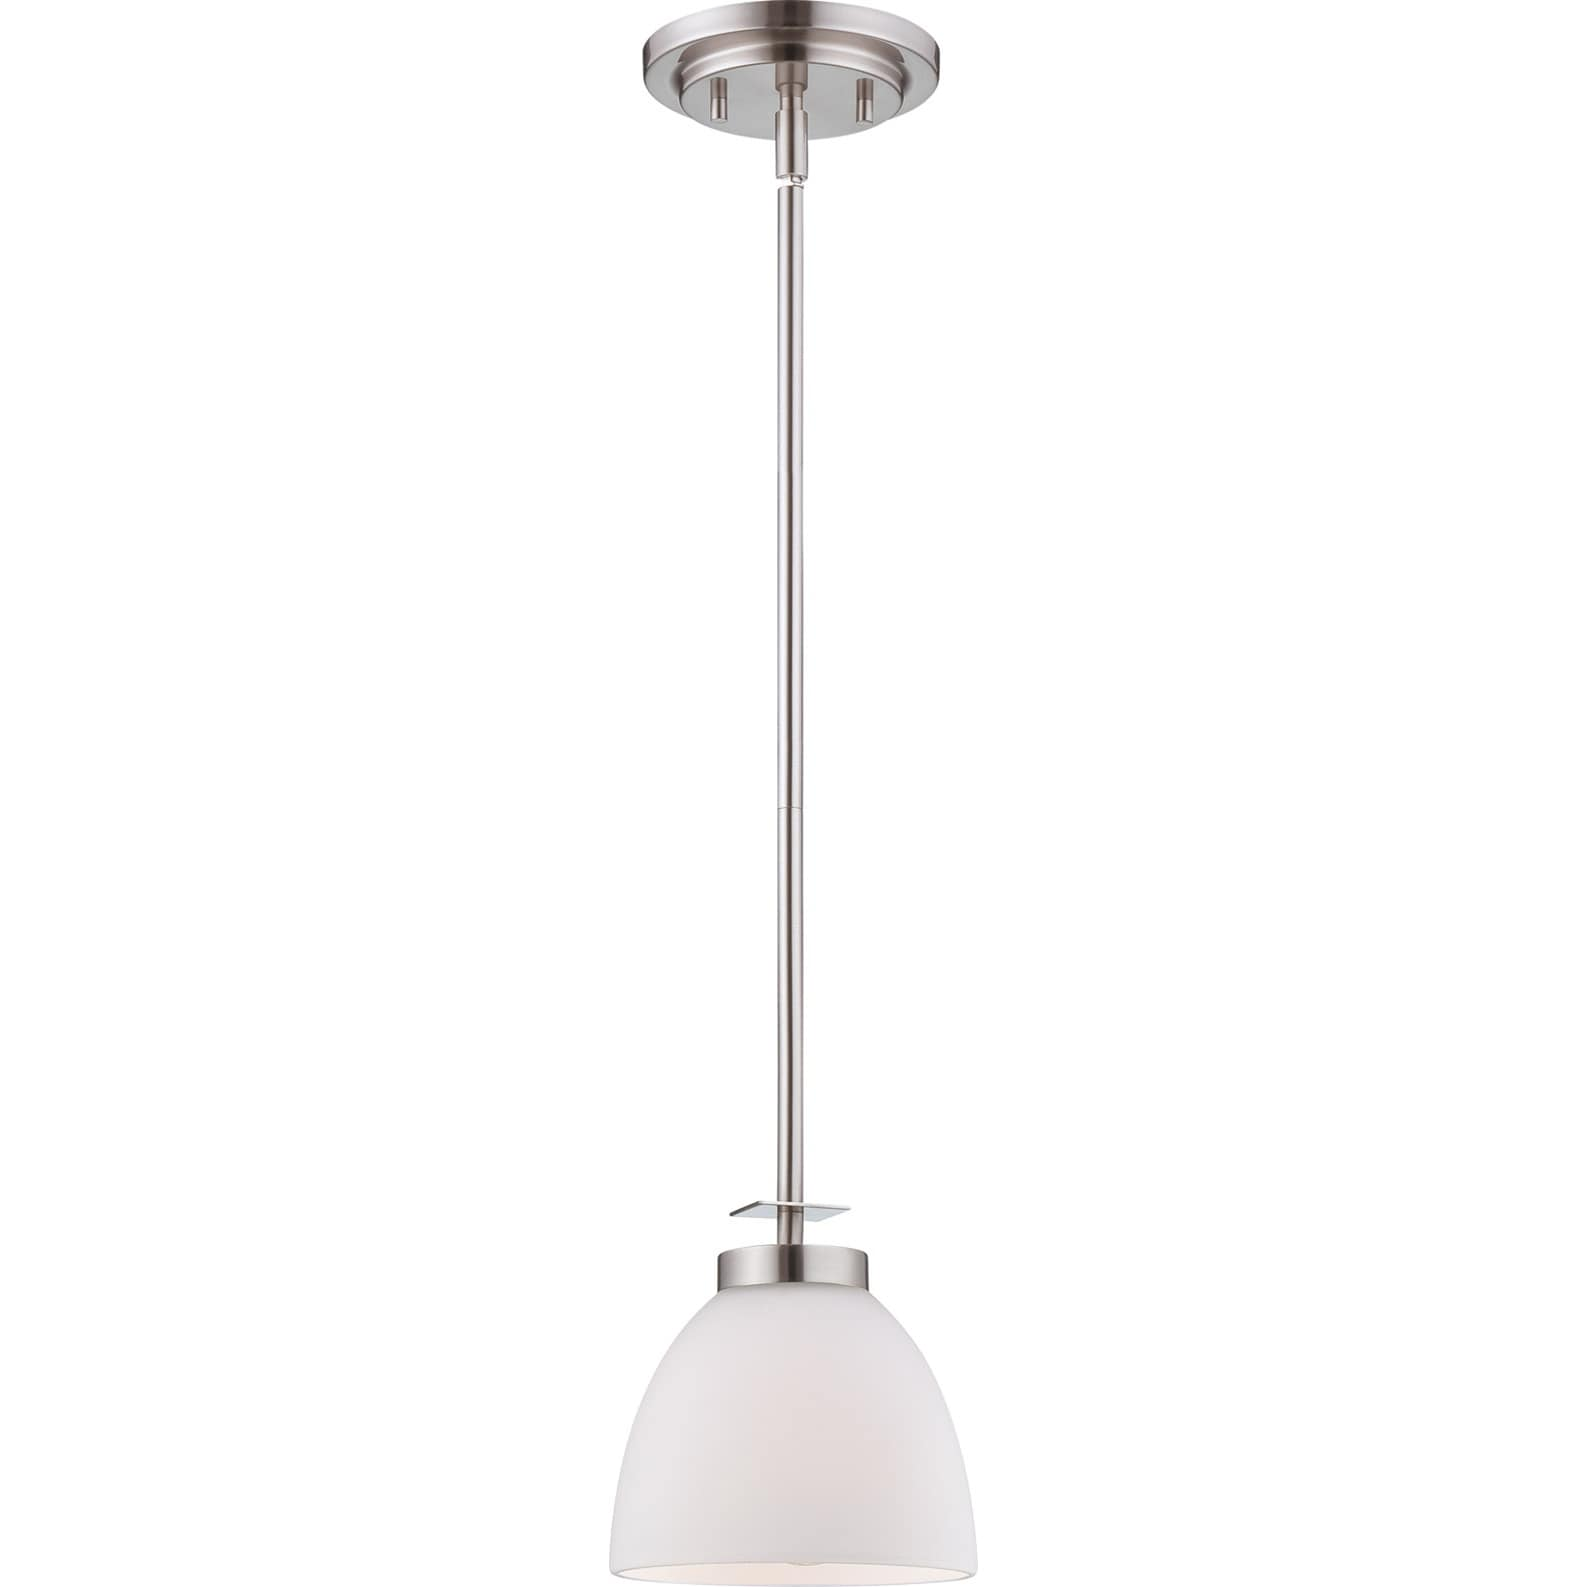 Nuvo Bentley 1-light Brushed Nickel Mini Pendant